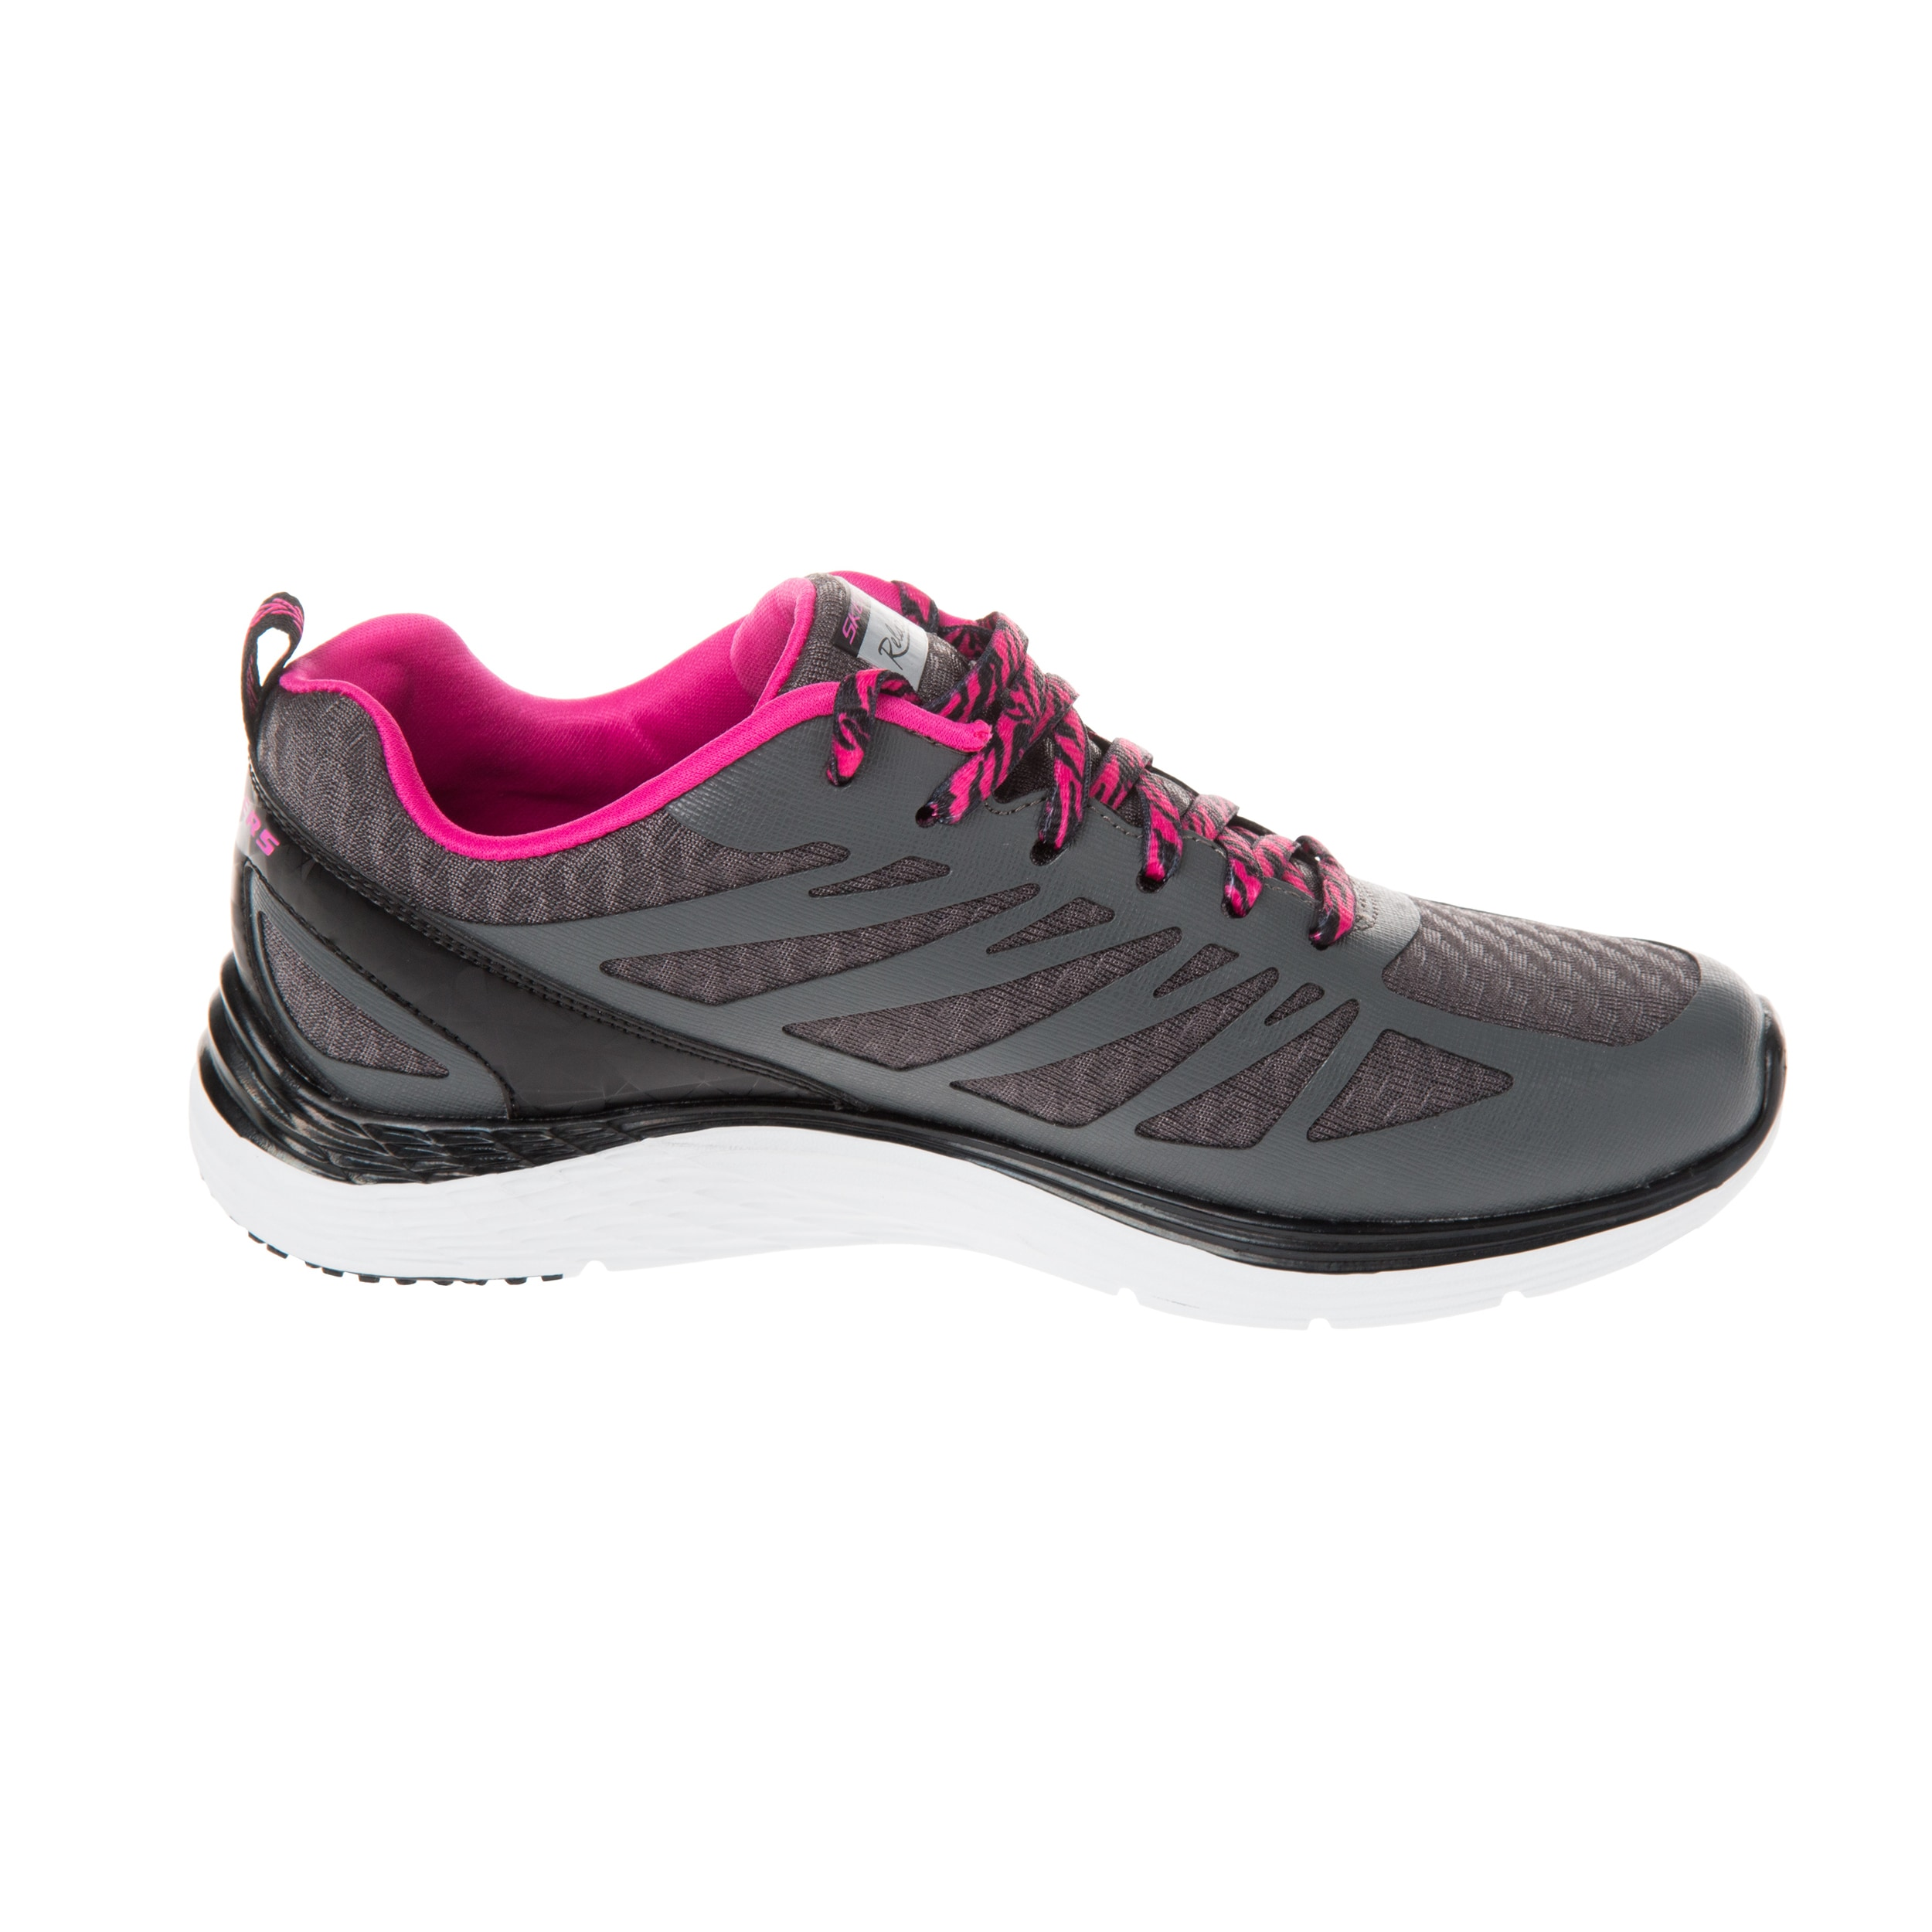 b6d41f20ae06 Shop Skechers USA Sport Valeris Flying High Relaxed Fit Sneakers with  Air-Cooled Memory Foam - Free Shipping On Orders Over  45 - Overstock -  10084881